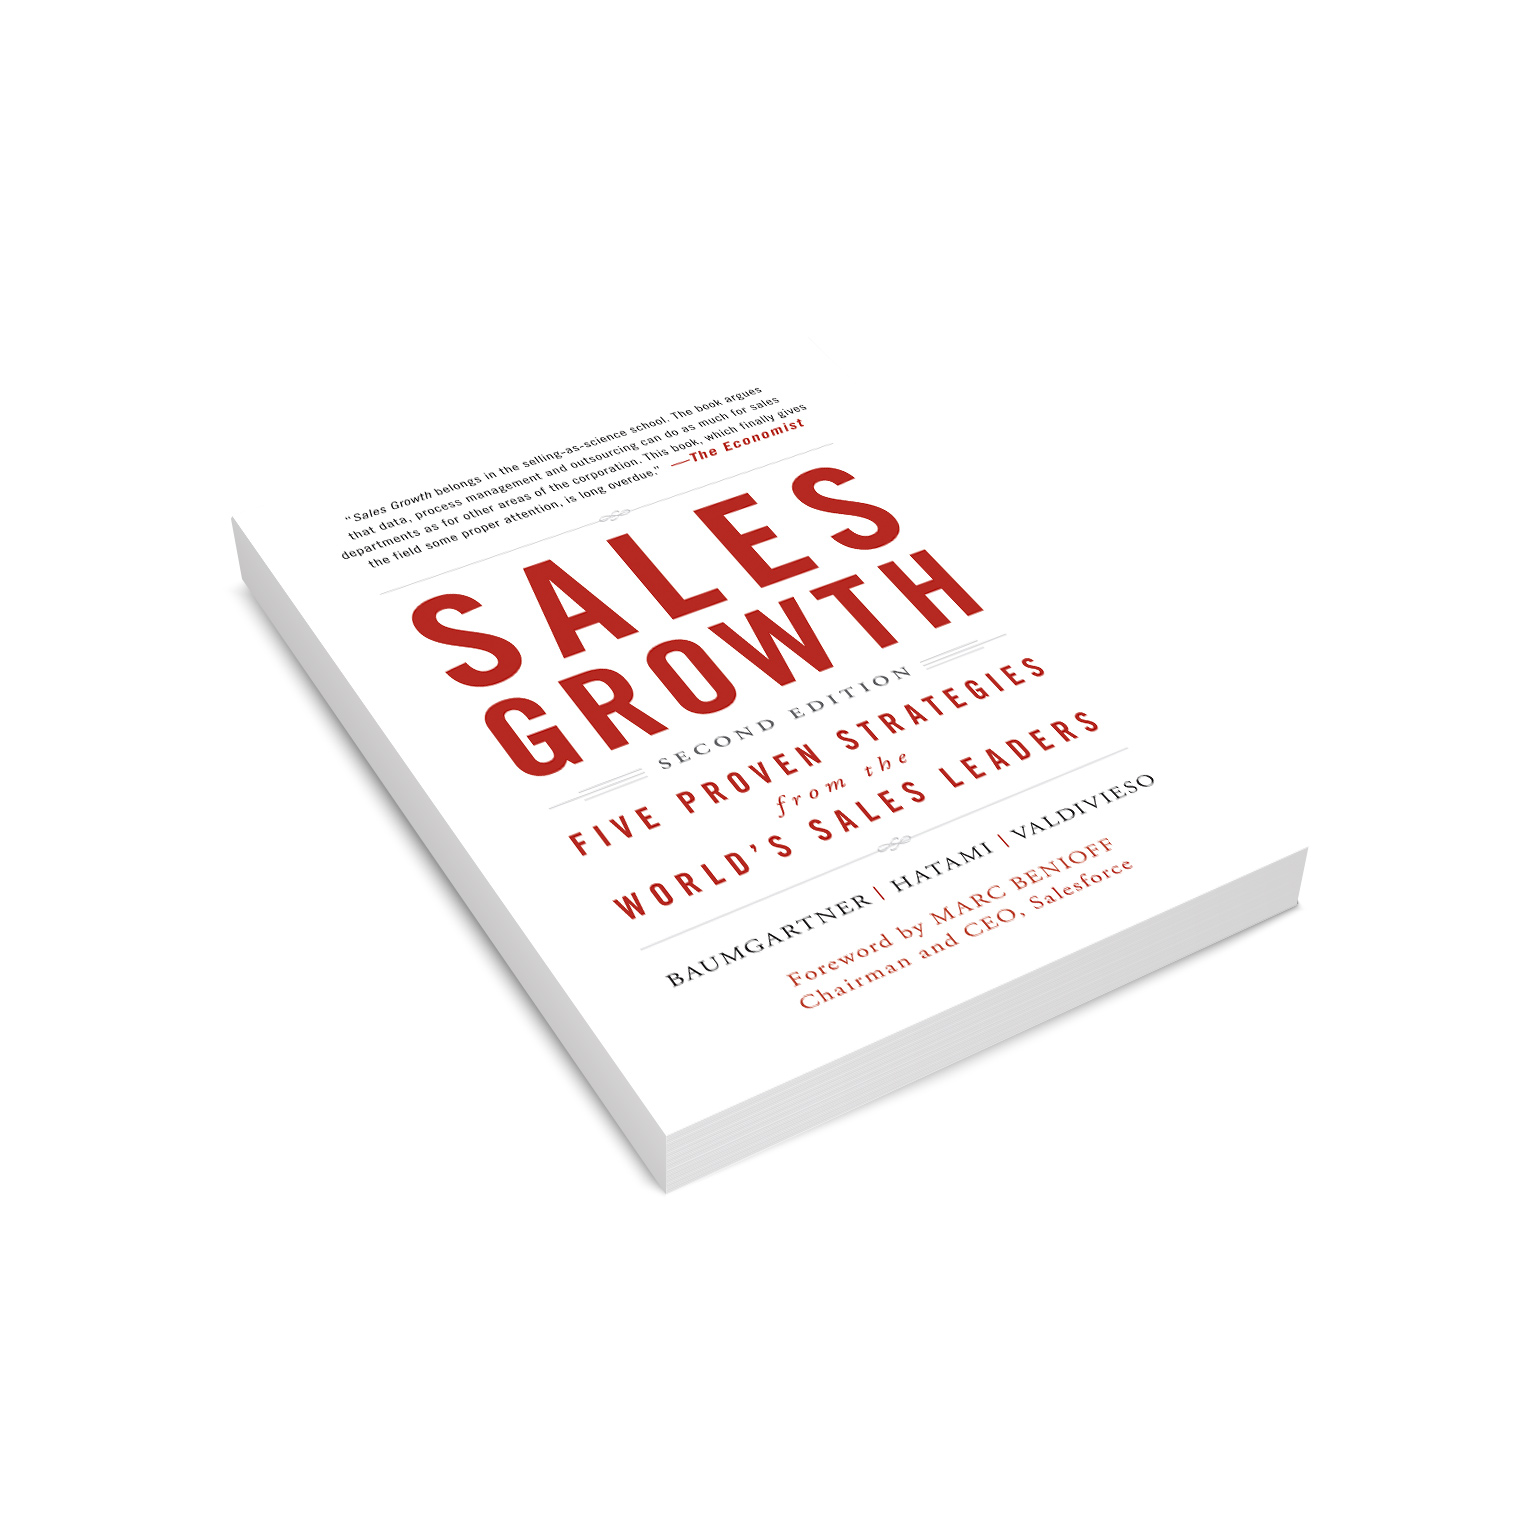 Sales Growth: Five Proven Strategies From The World's